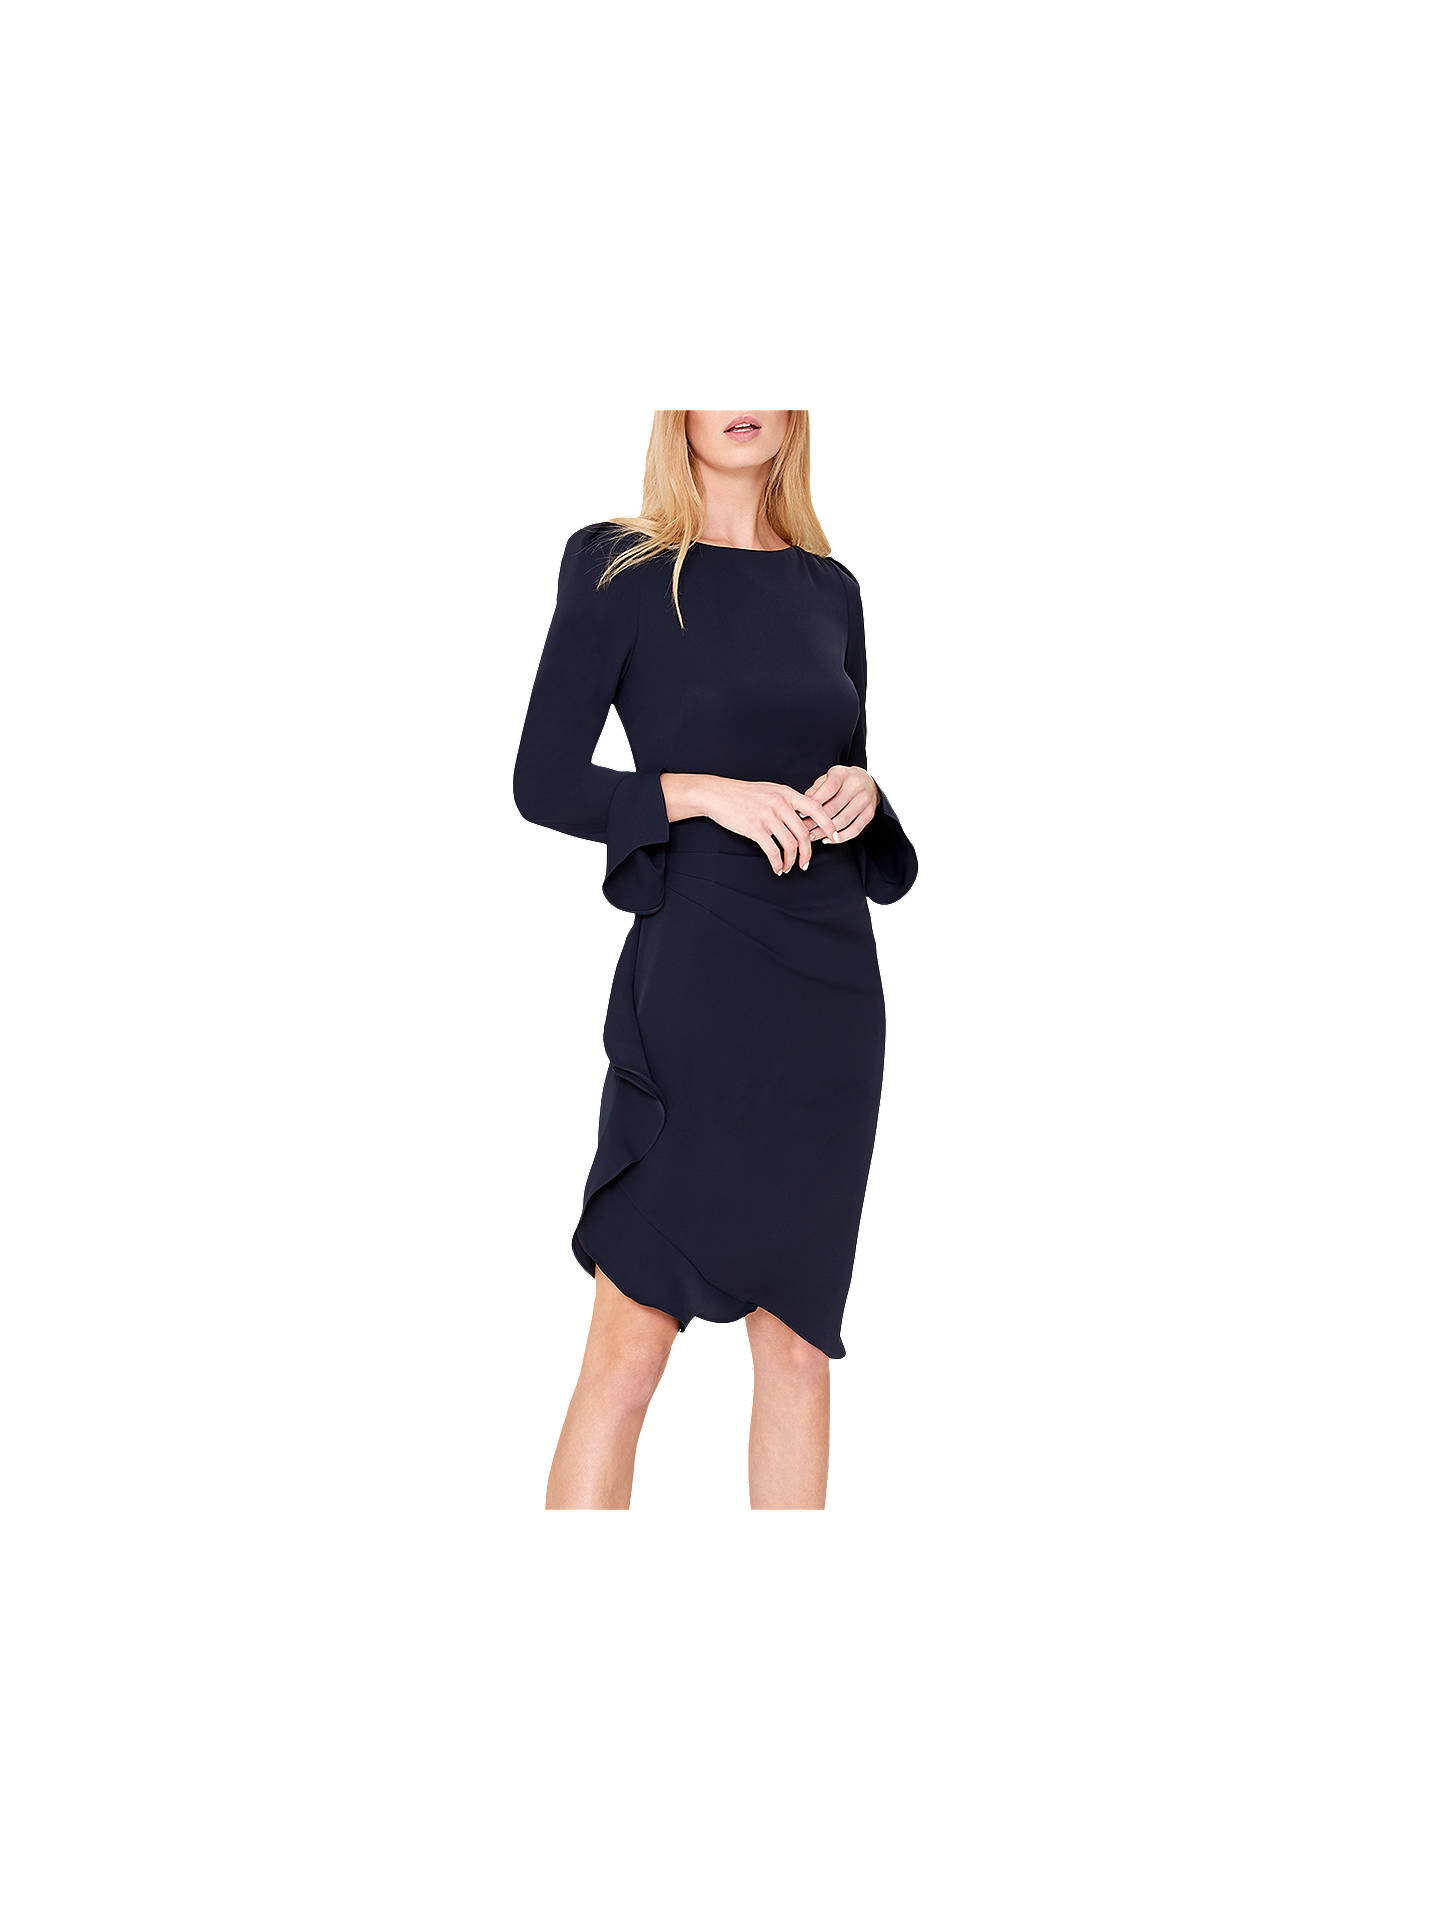 3196bd35ff0 Buy Damsel in a Dress Carrera Frill Tunic Dress, Navy, 14 Online at  johnlewis ...